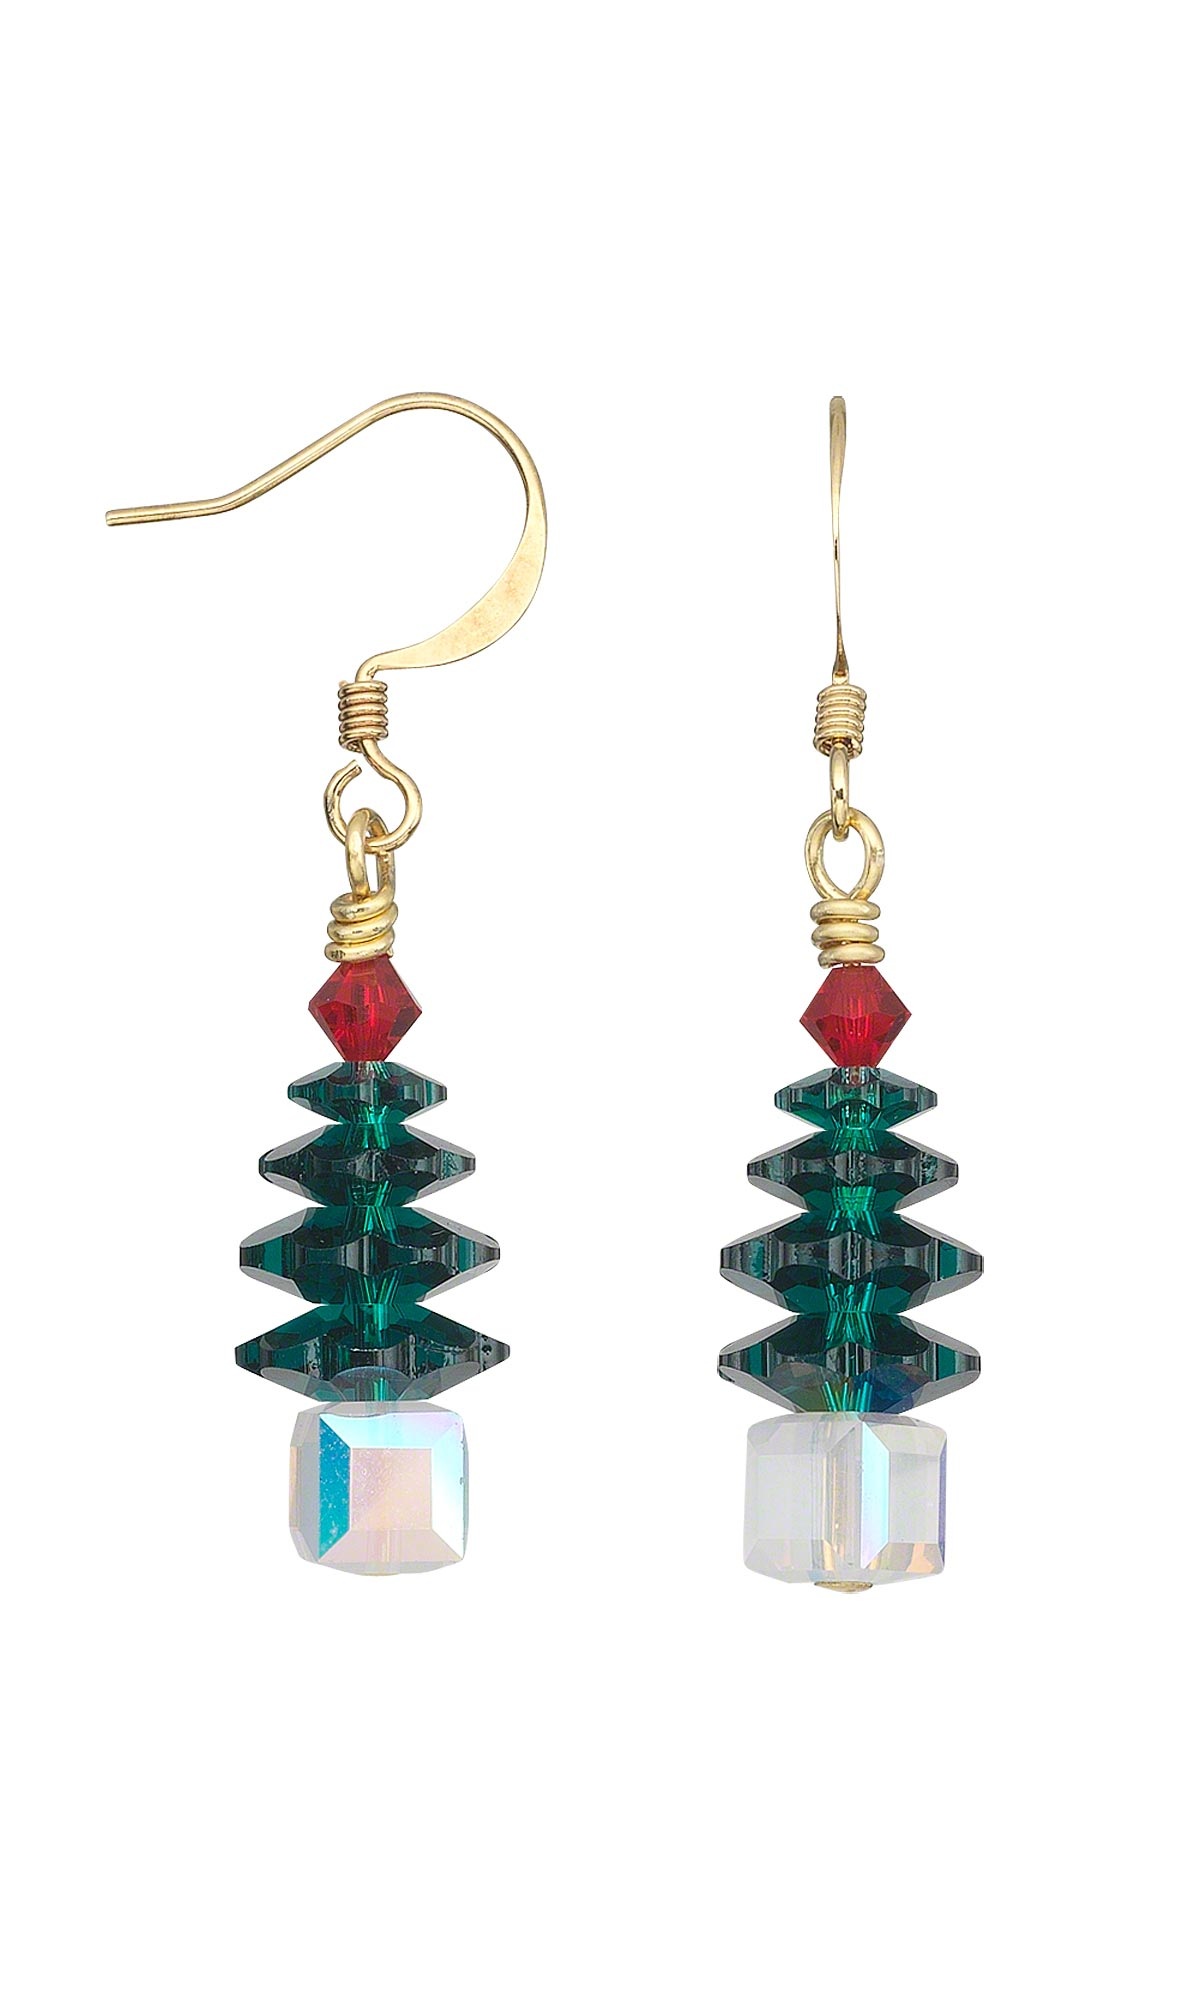 Jewelry Design - Christmas Tree Earrings with Swarovski ...